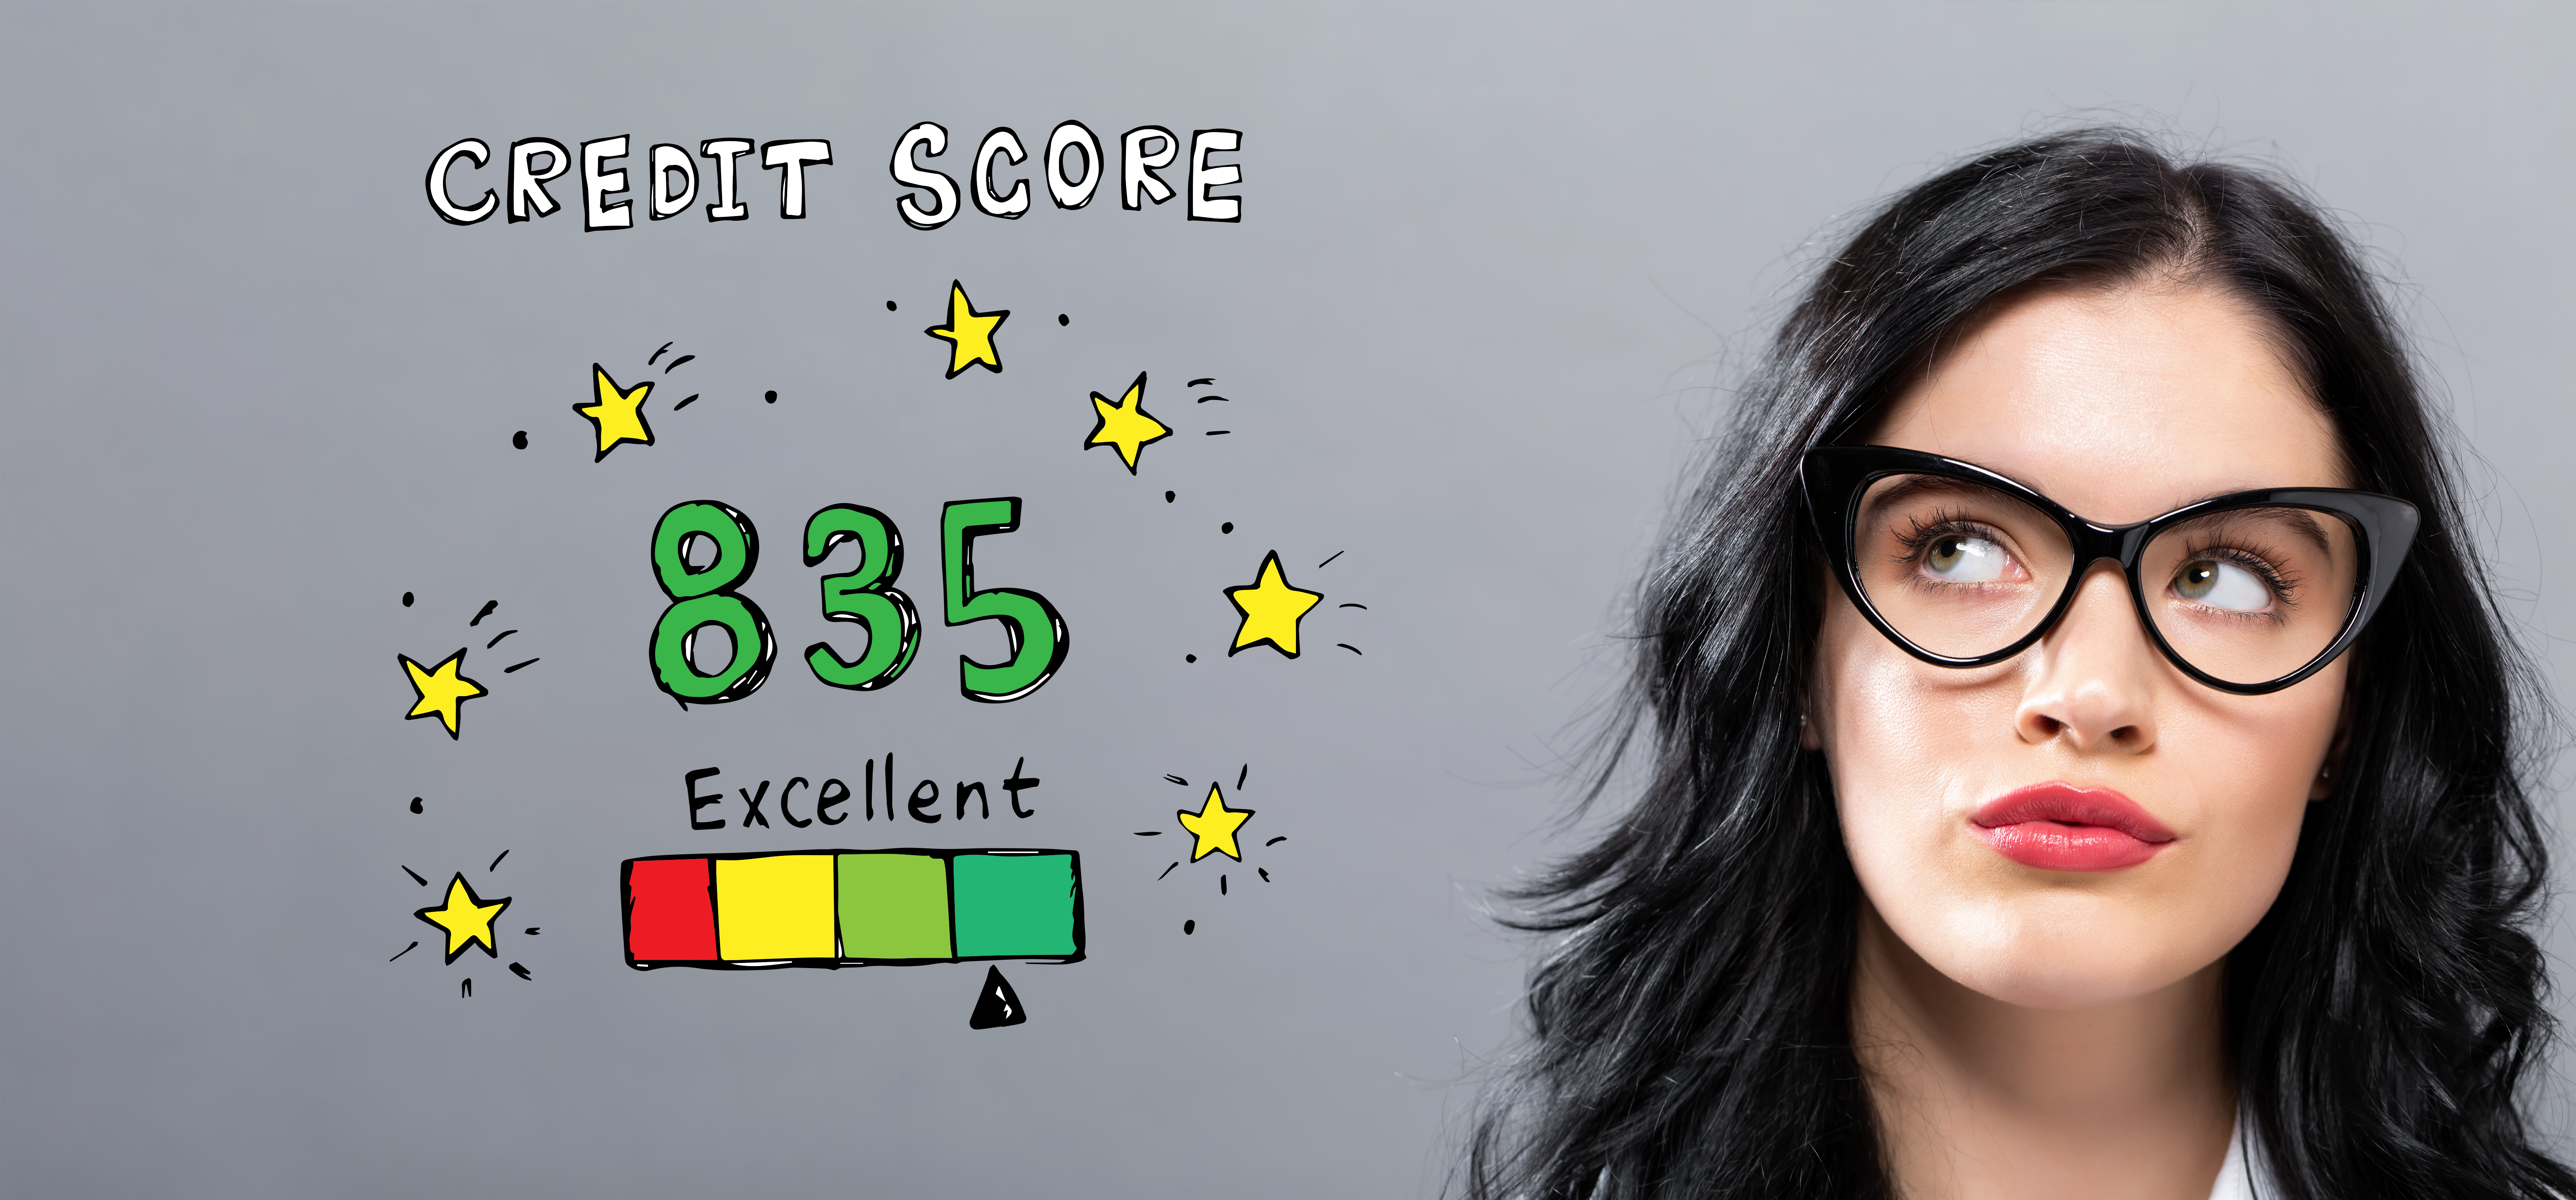 Young woman with excellent credit score